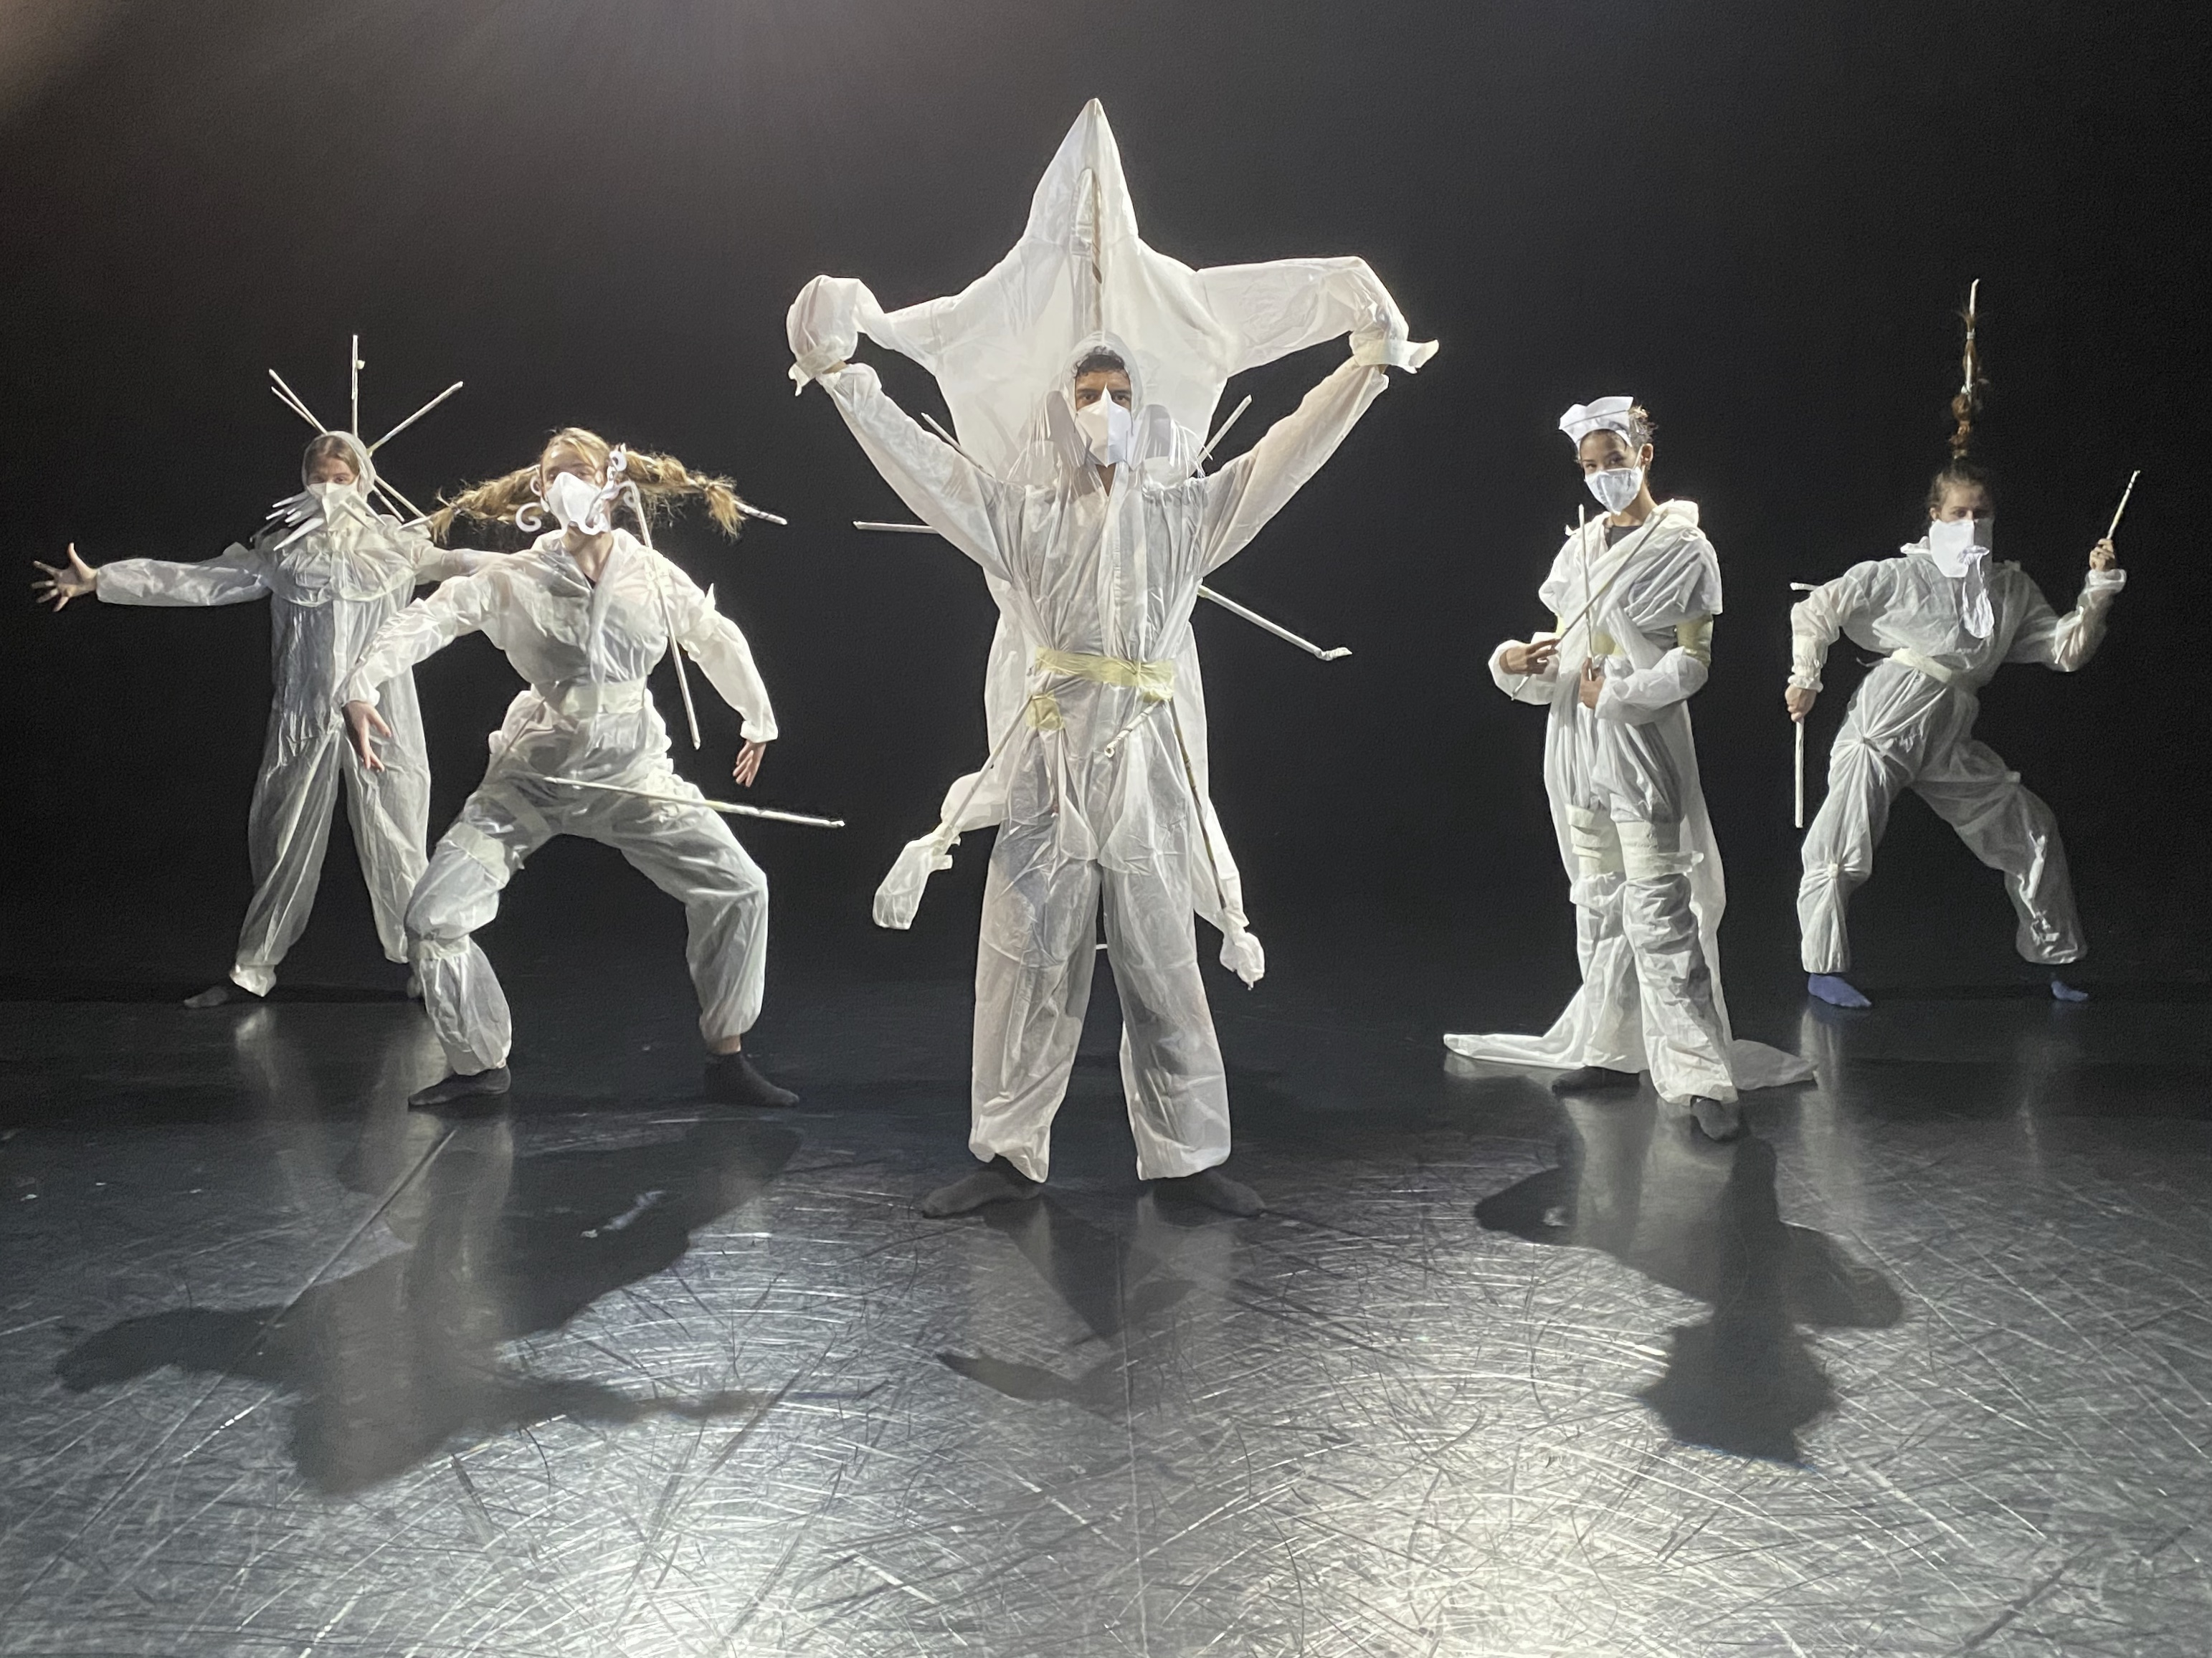 A group of five people stand on stage in white protective suits to which various self-made elements are attached. The look of the costumes is futuristic.